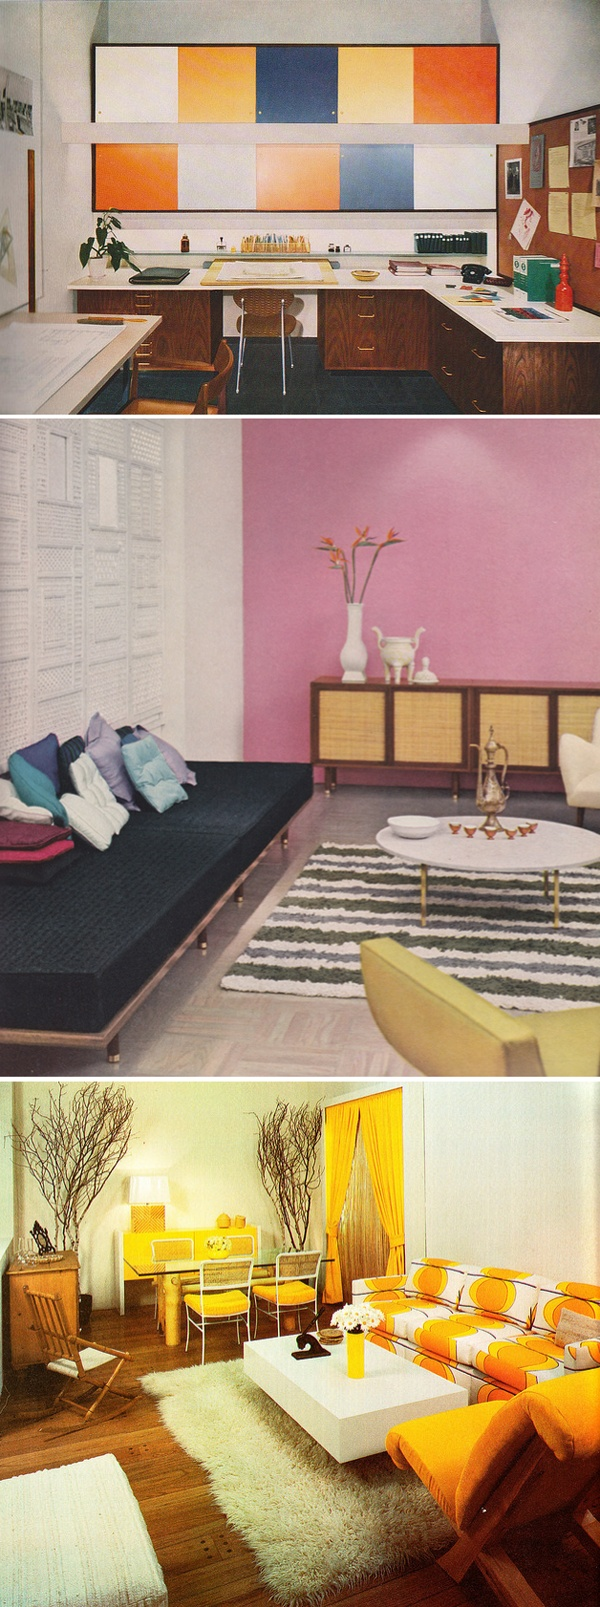 I need those colored shelves: Small Bathroom Design, Houses Gardens, Living Rooms, Pink Accent Wall, Interiors Design, Mid Century, Pink Wall, Retro Interiors, Complete Guide